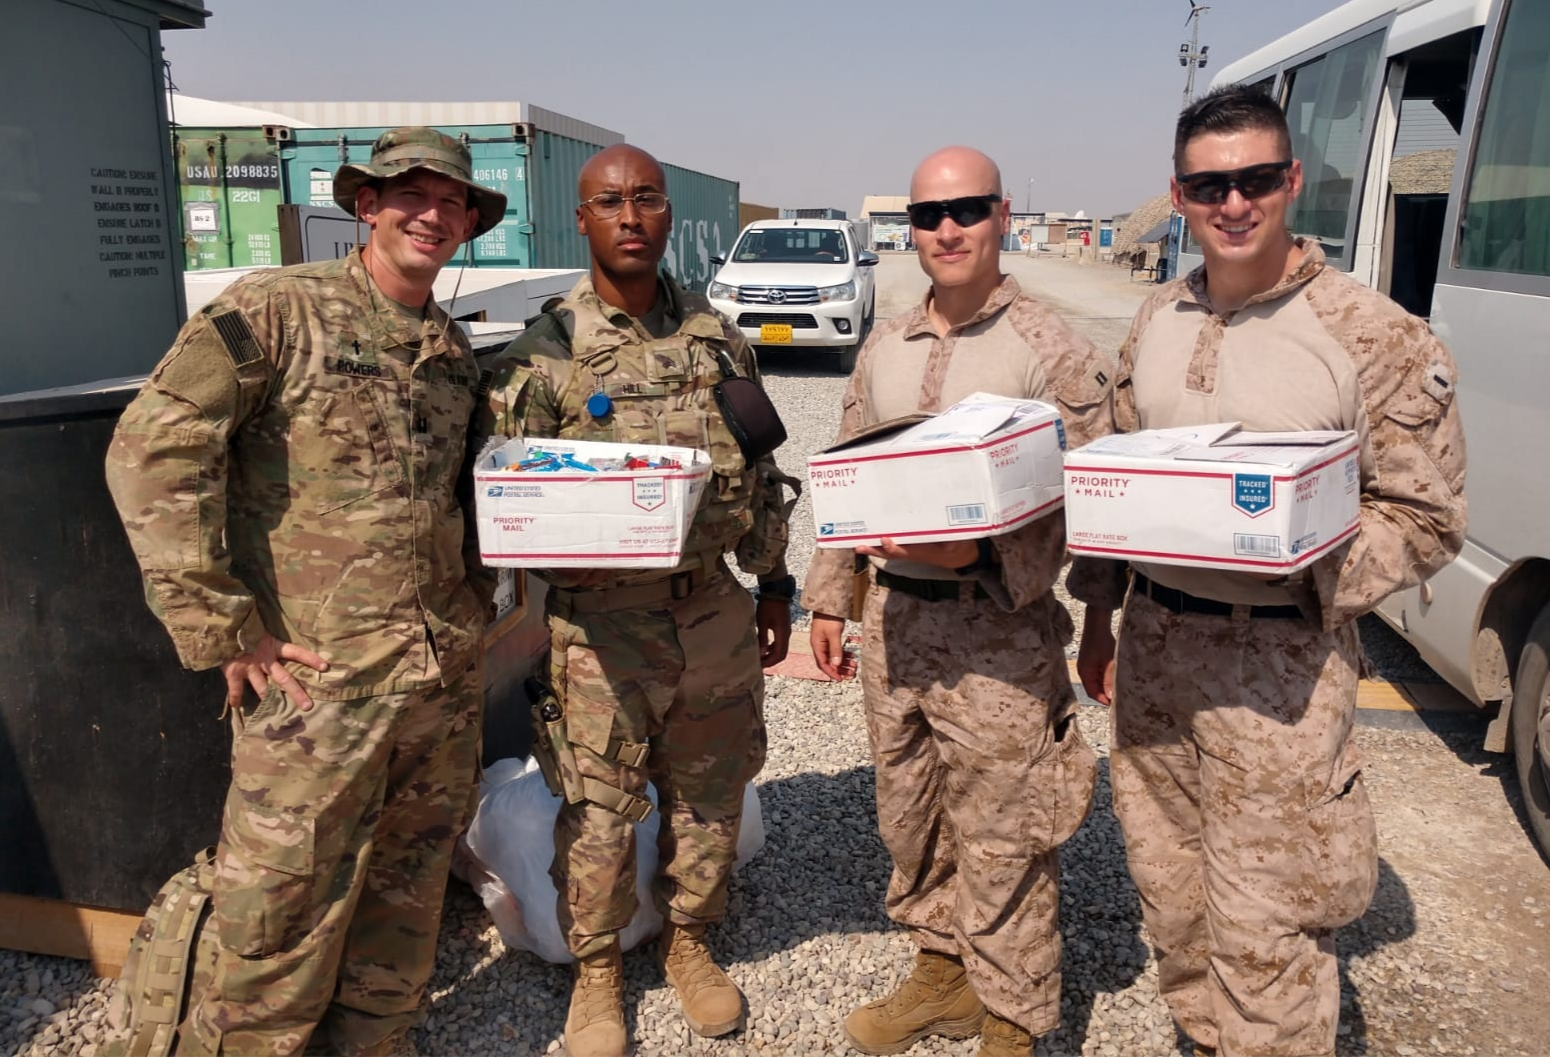 Deployed servicemen with care packages.